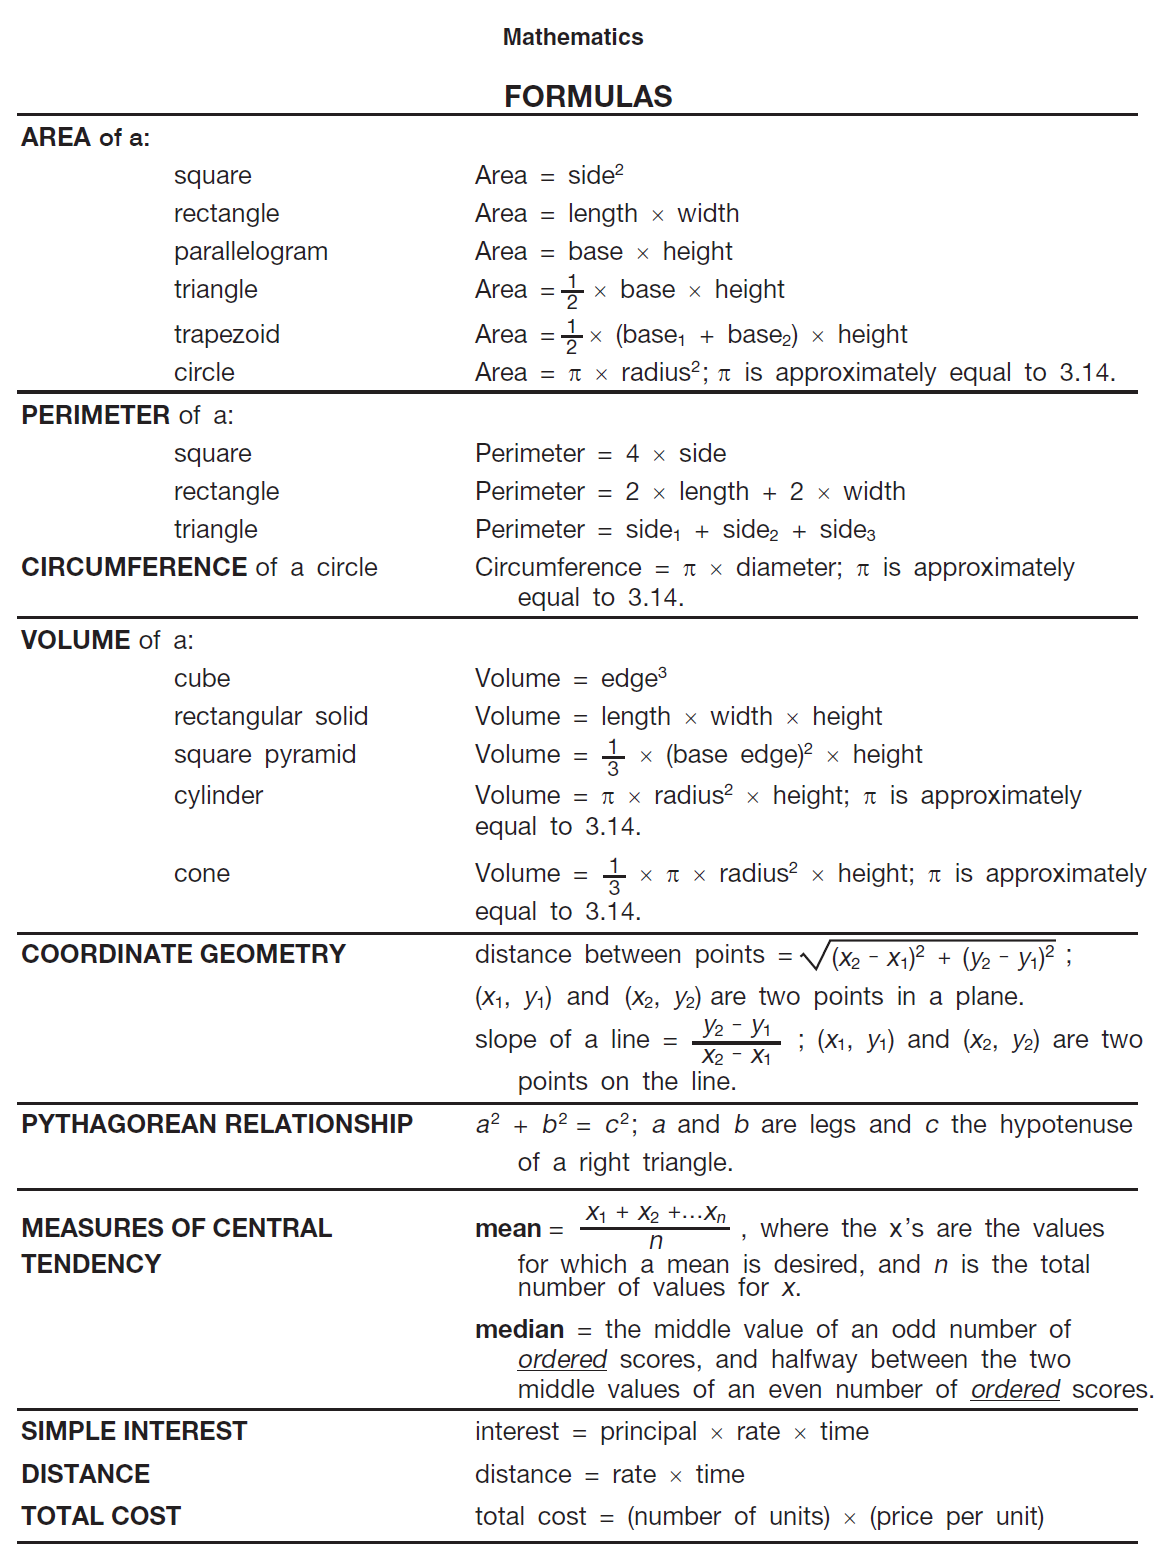 Uncategorized Gre Math Worksheets formula sheet for math leave a reply cancel recipes to reply